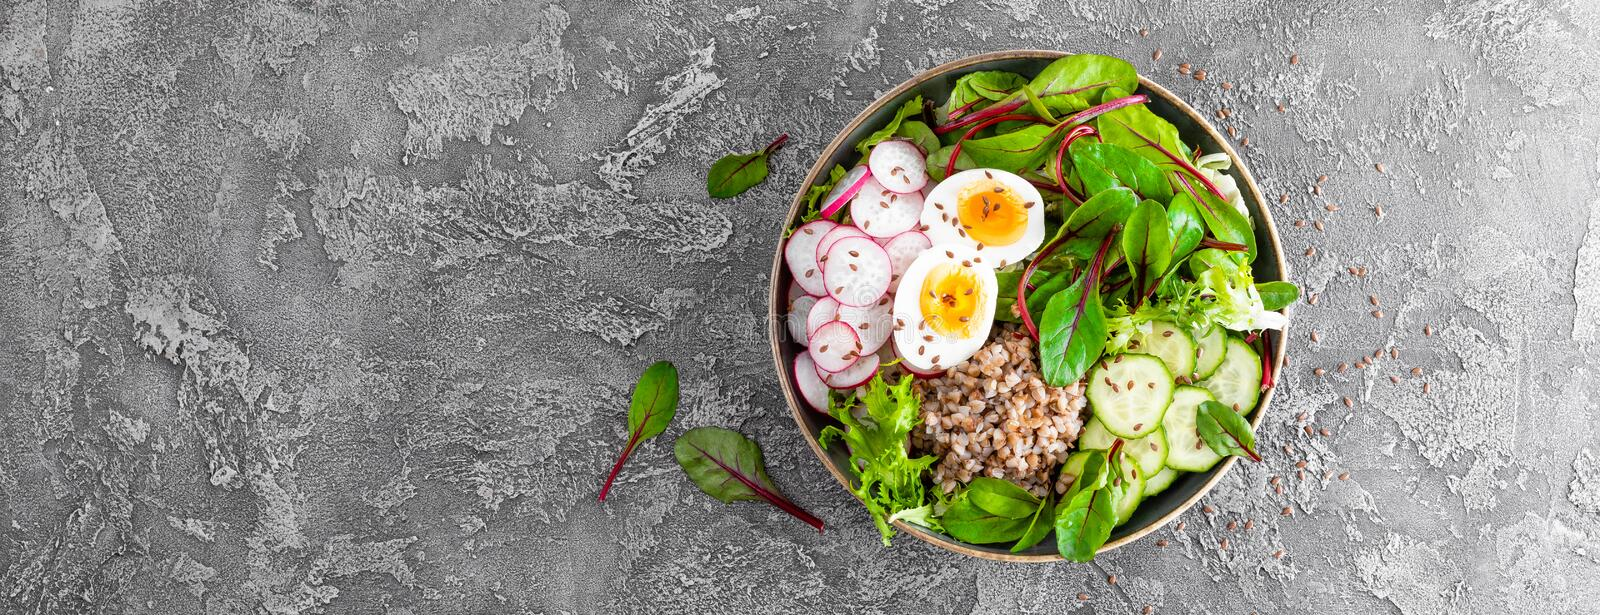 Buddha bowl dish with buckwheat porridge, boiled egg, fresh vegetable salad of radish, cucumber, lettuce and chard leaves. Healthy. Lunch menu. Top view. Banner stock image